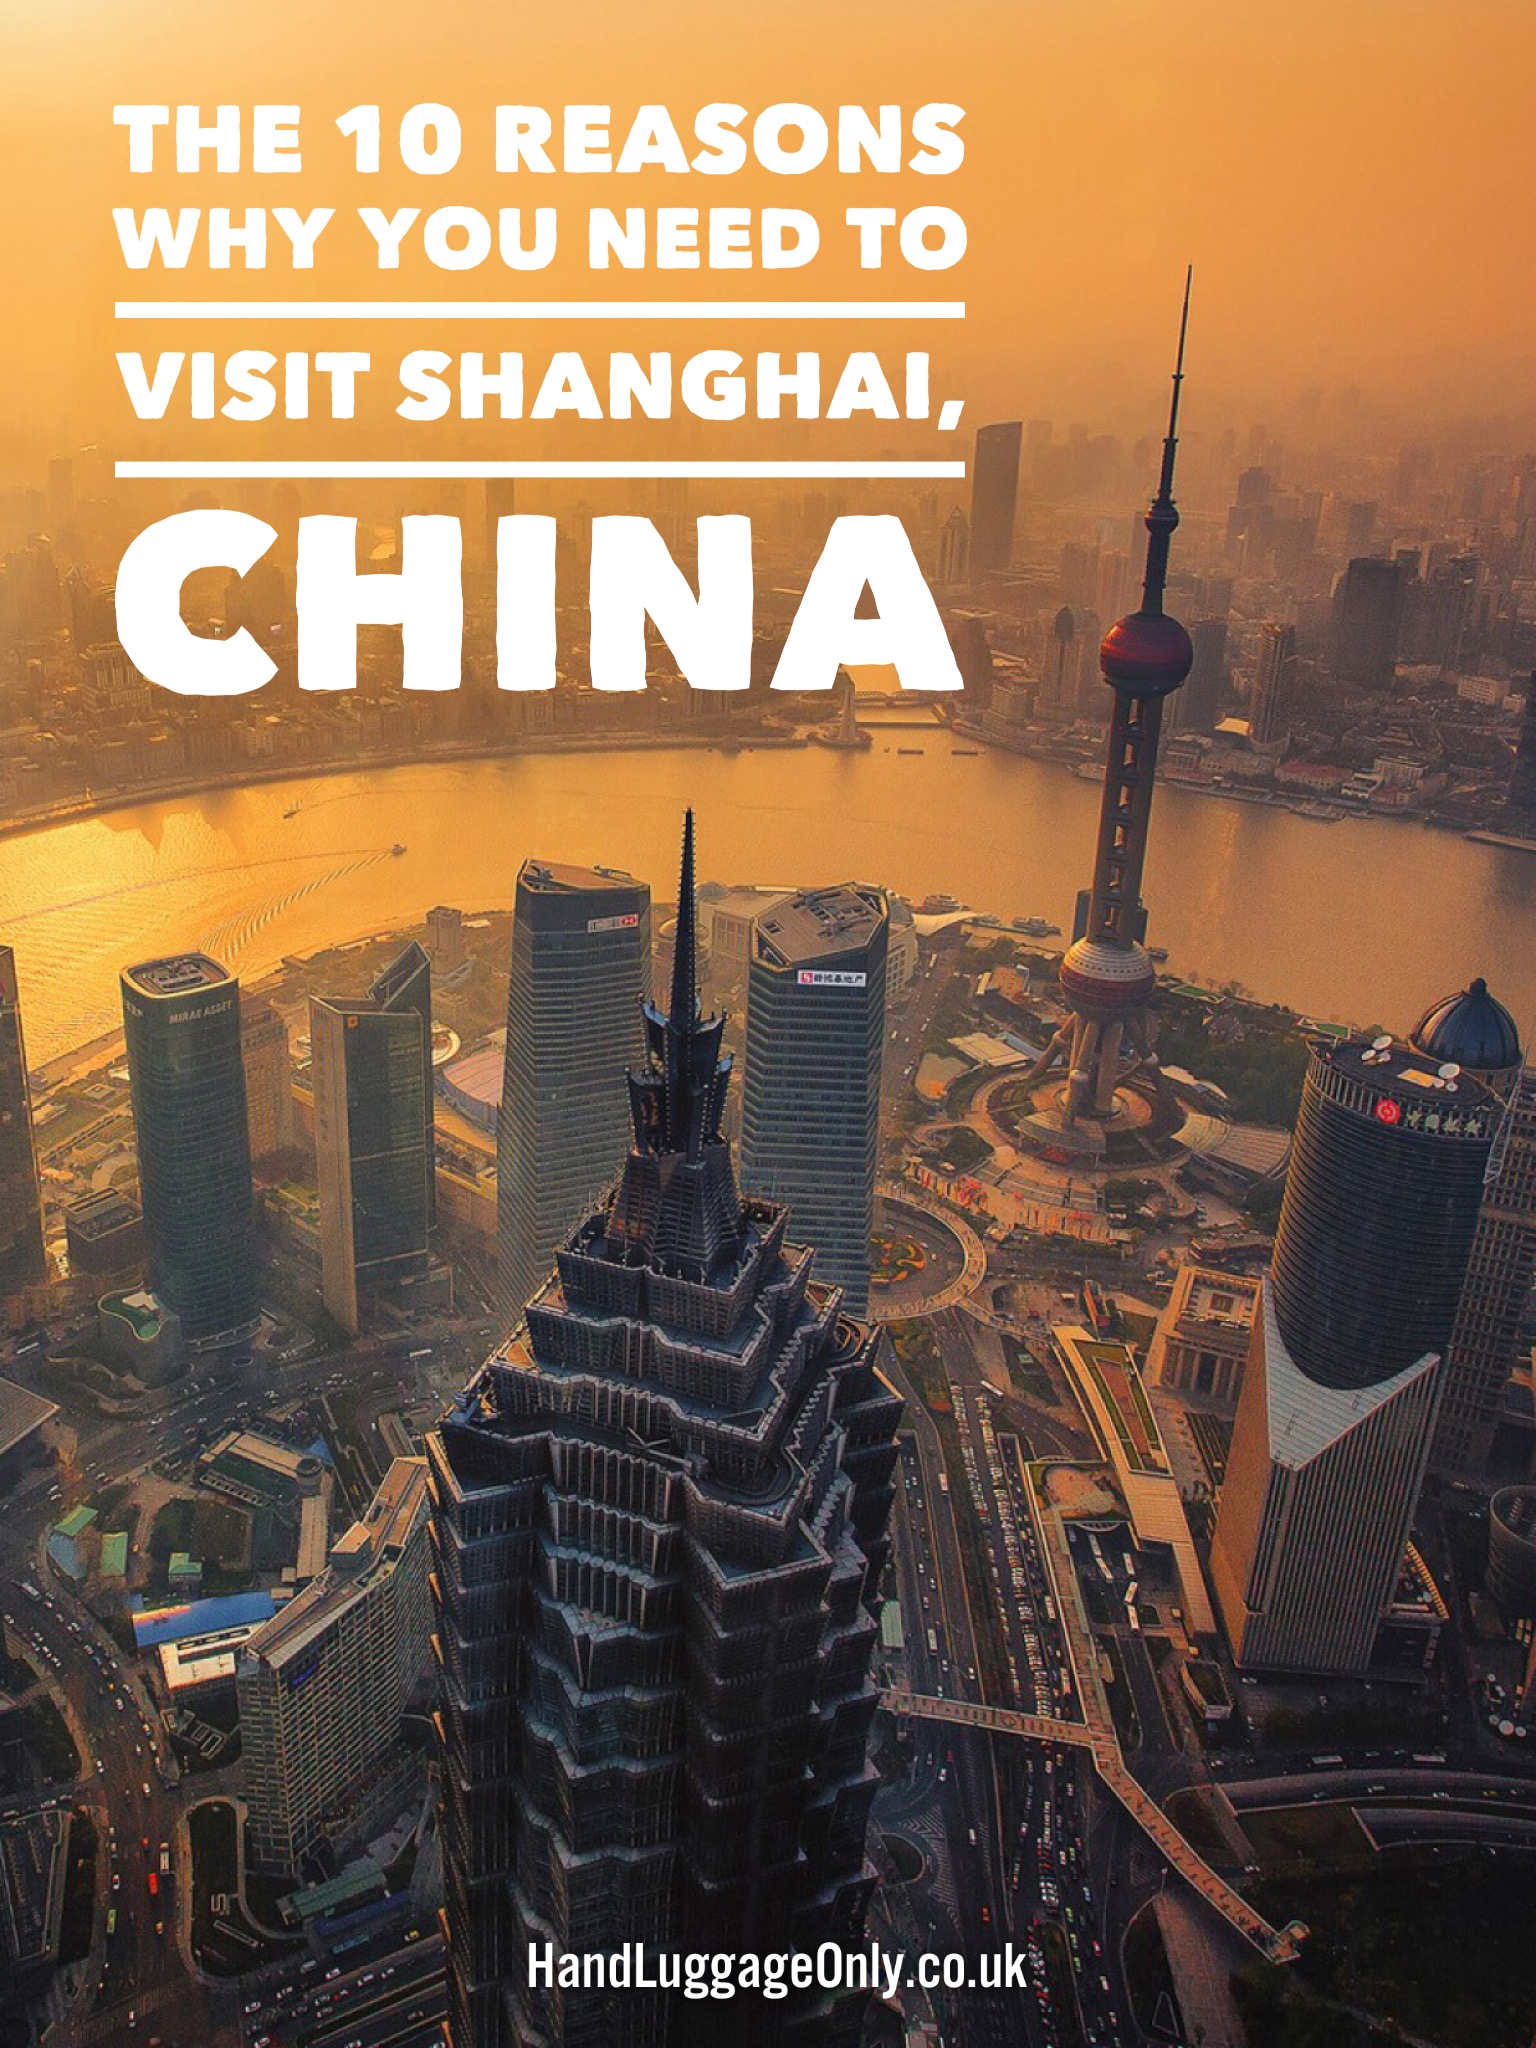 These Are The 10 Reasons Why You'll Want To Visit Shanghai This Year